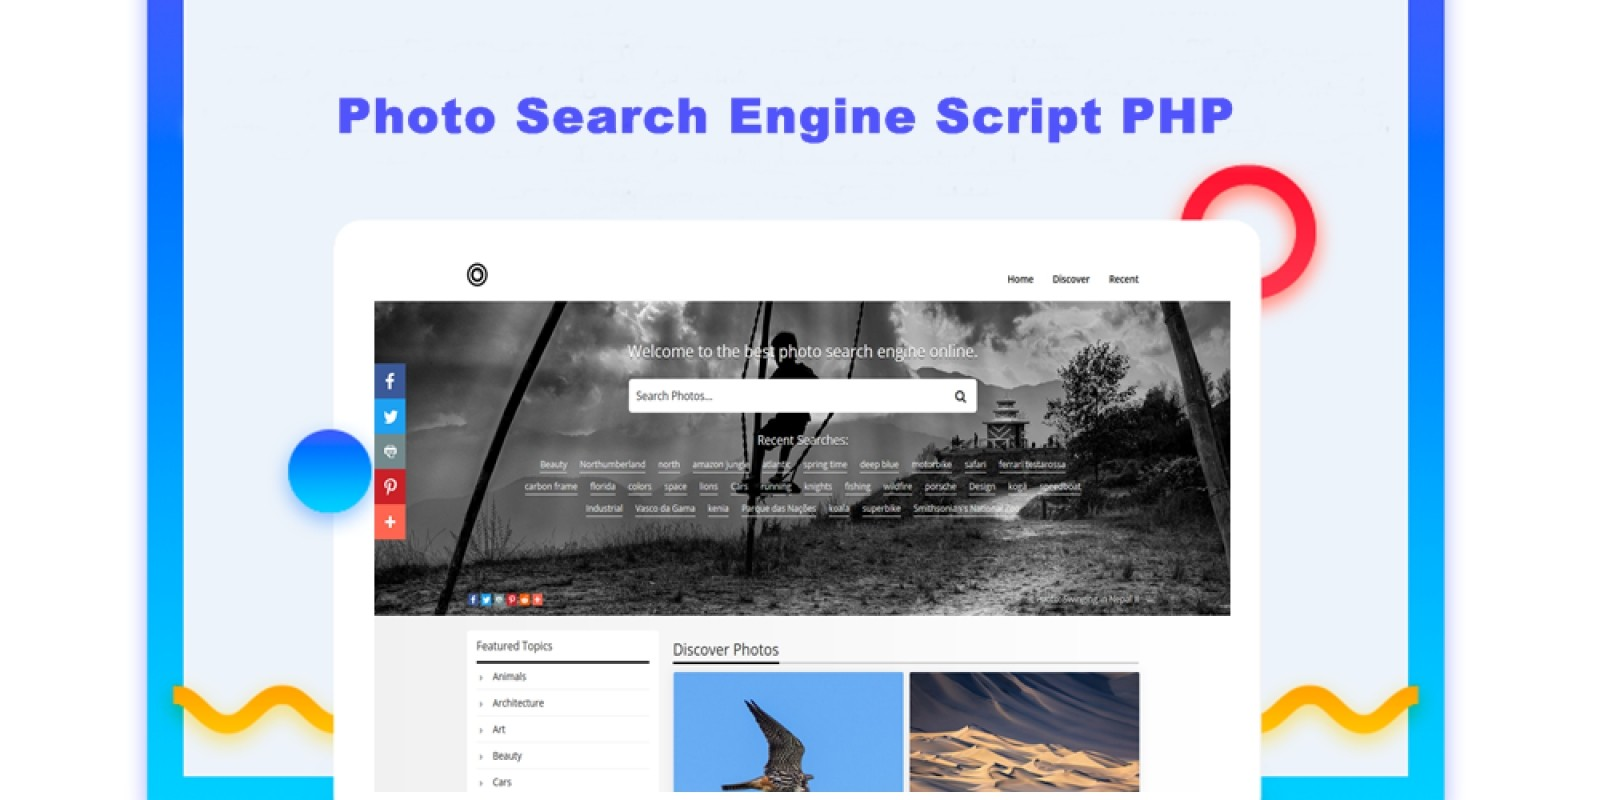 Photo Search Engine Script PHP